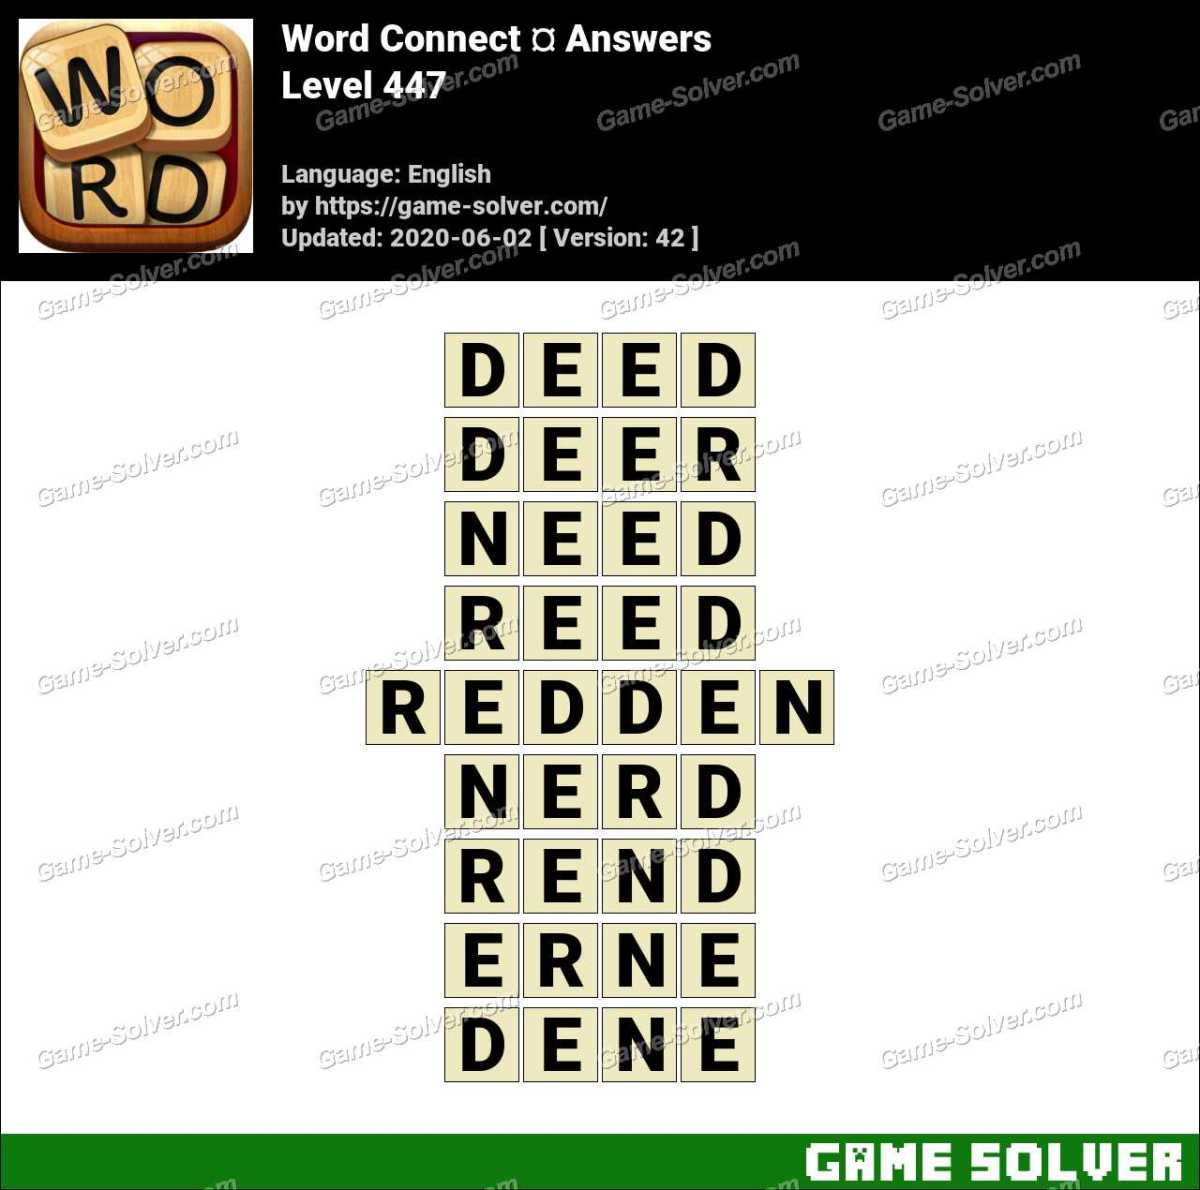 Word Connect Level 447 Answers